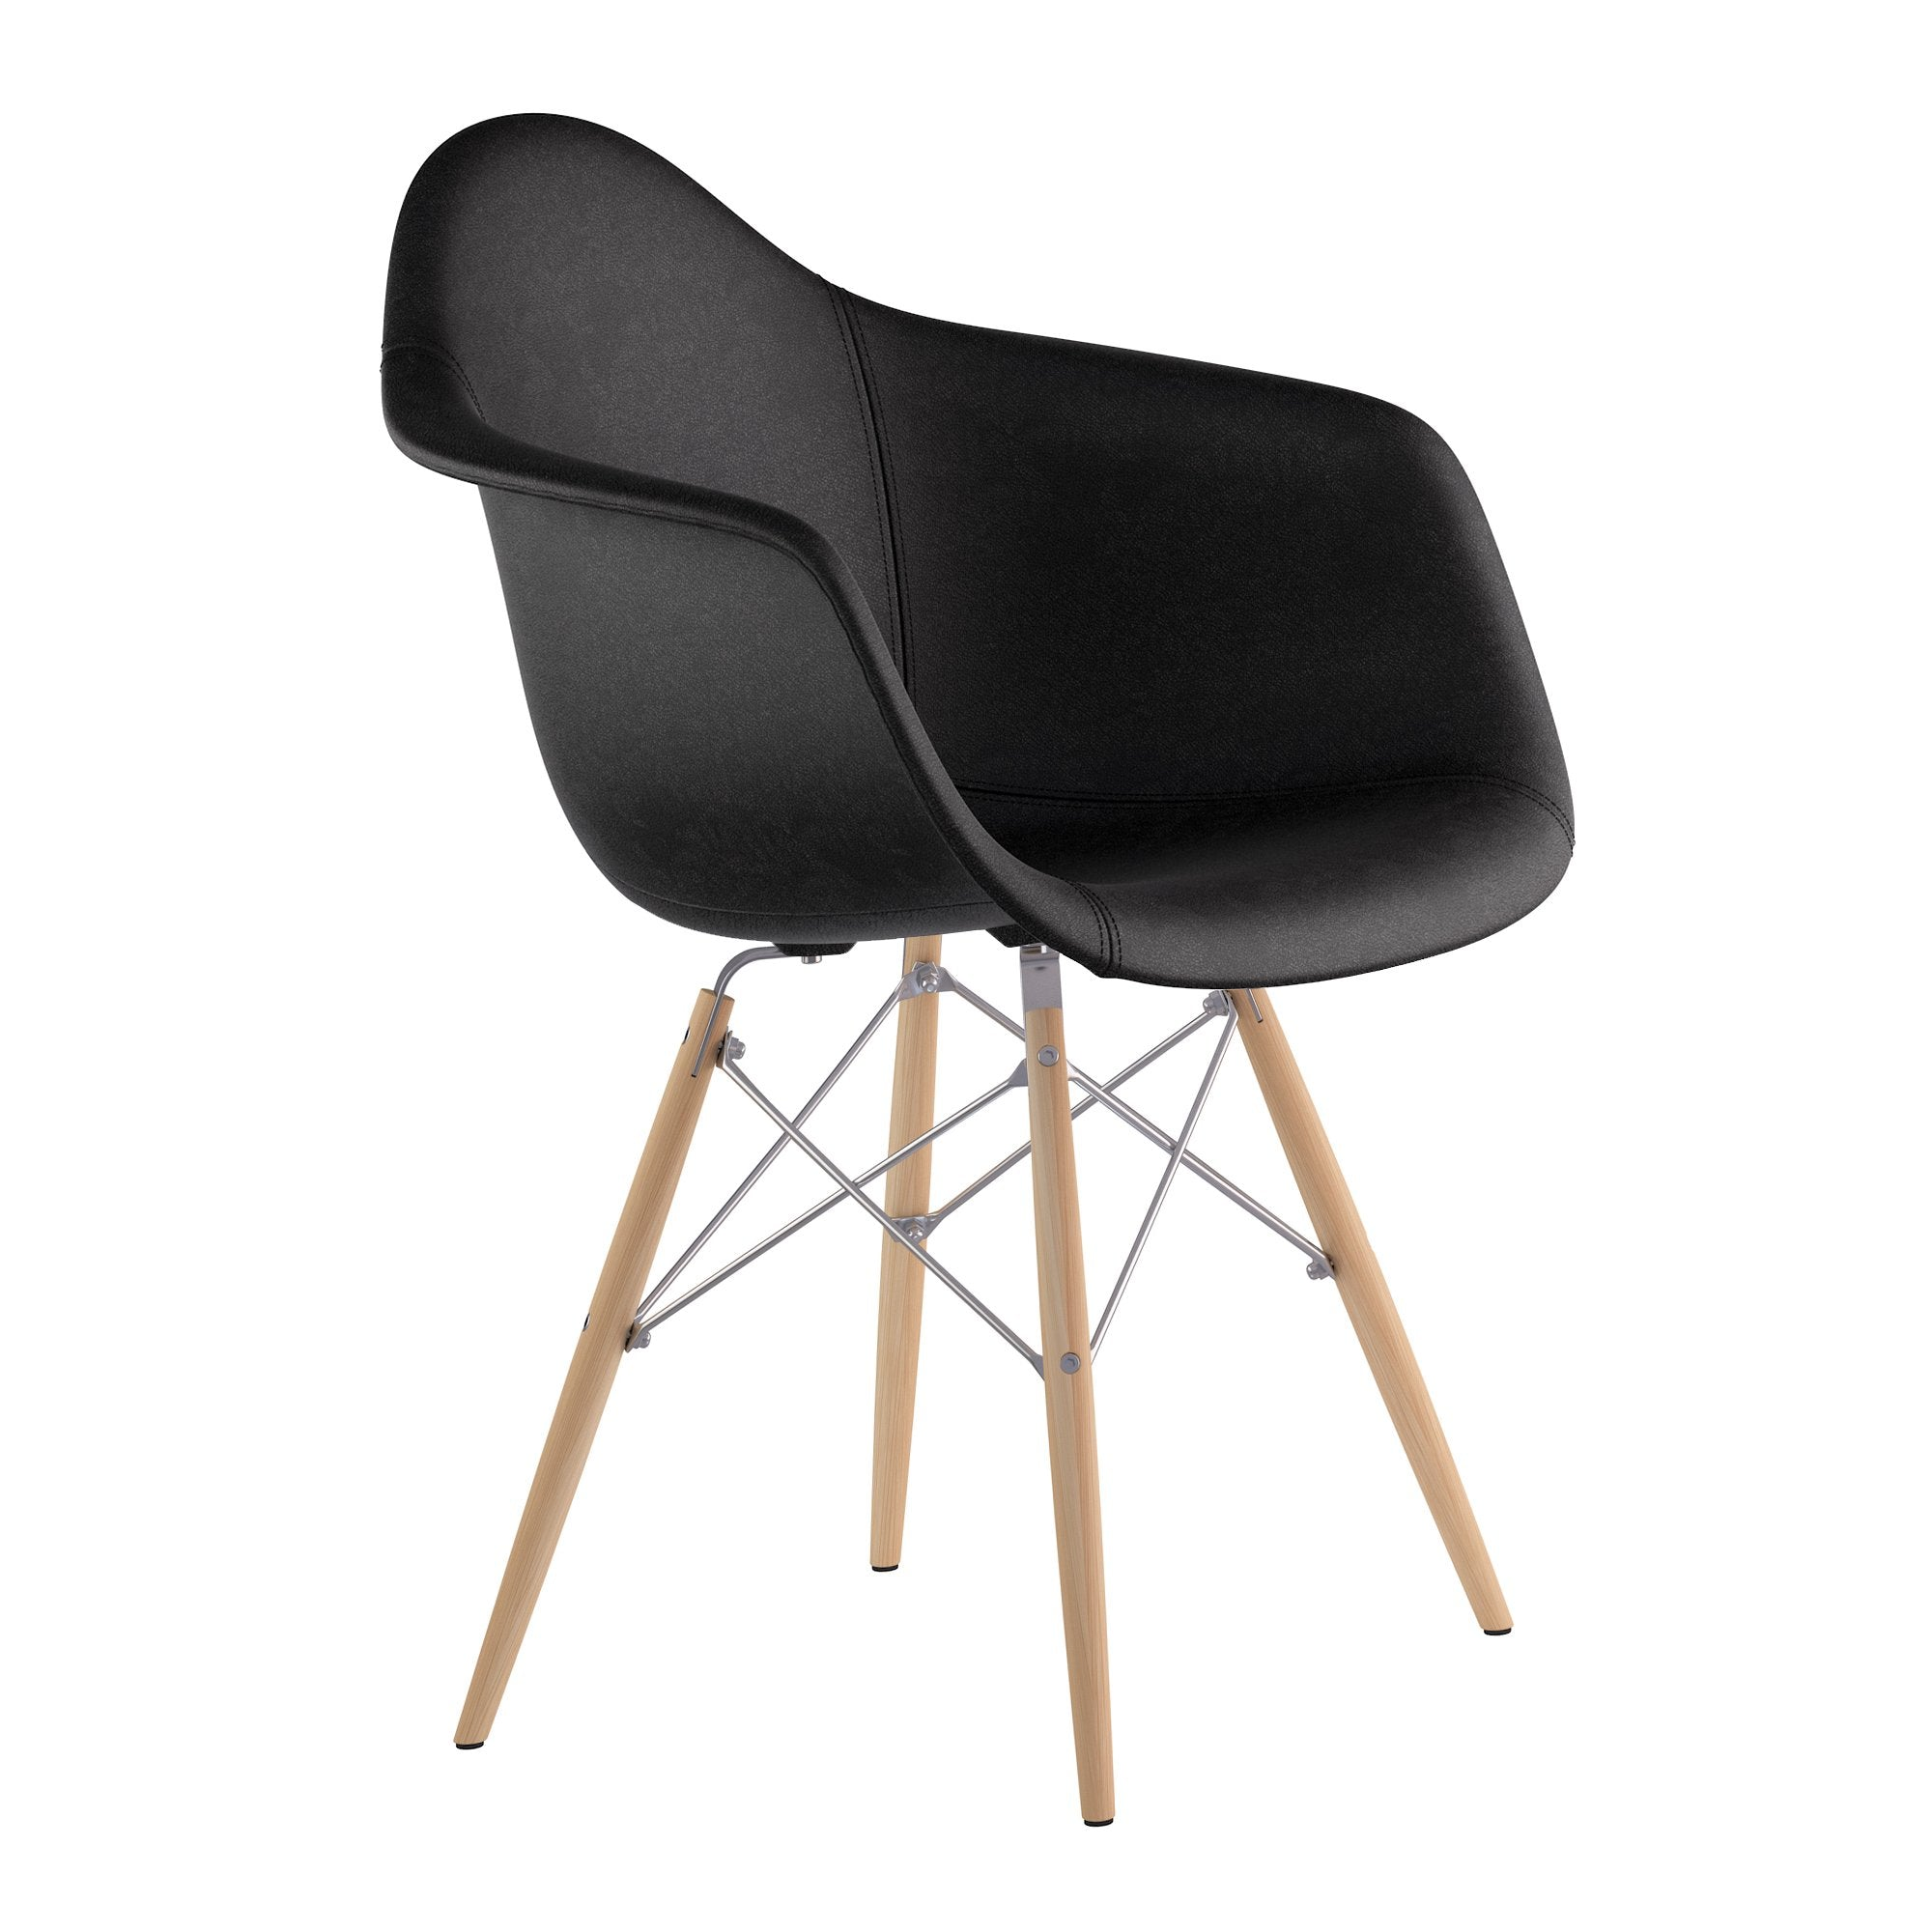 Fantastic Mid Century Dowel Arm Chair In Milano Black Leather With Natural Wood Legs Ibusinesslaw Wood Chair Design Ideas Ibusinesslaworg